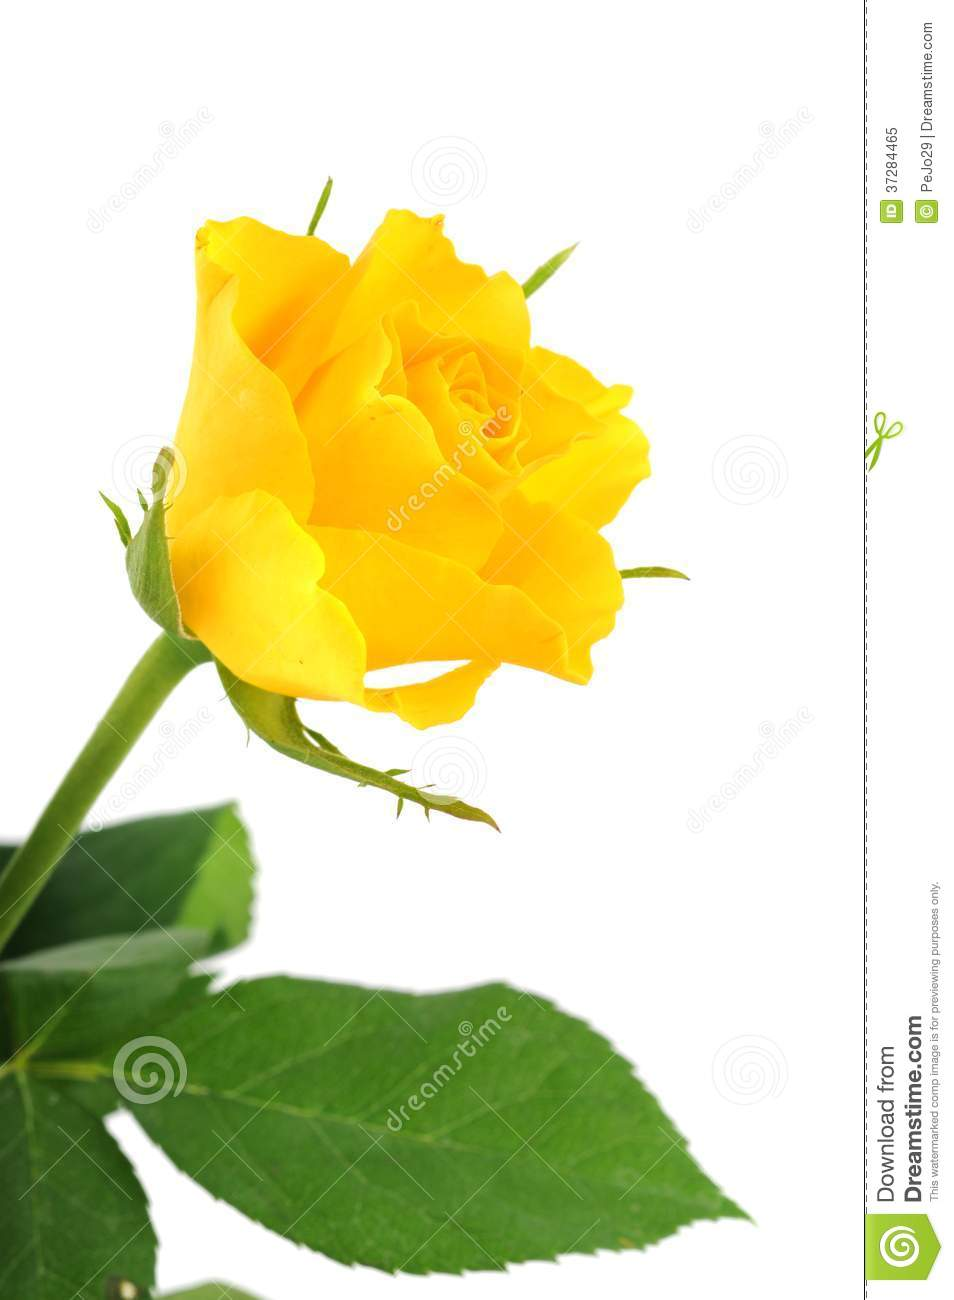 Yellow rose stock image. Image of close, petal, flower ...